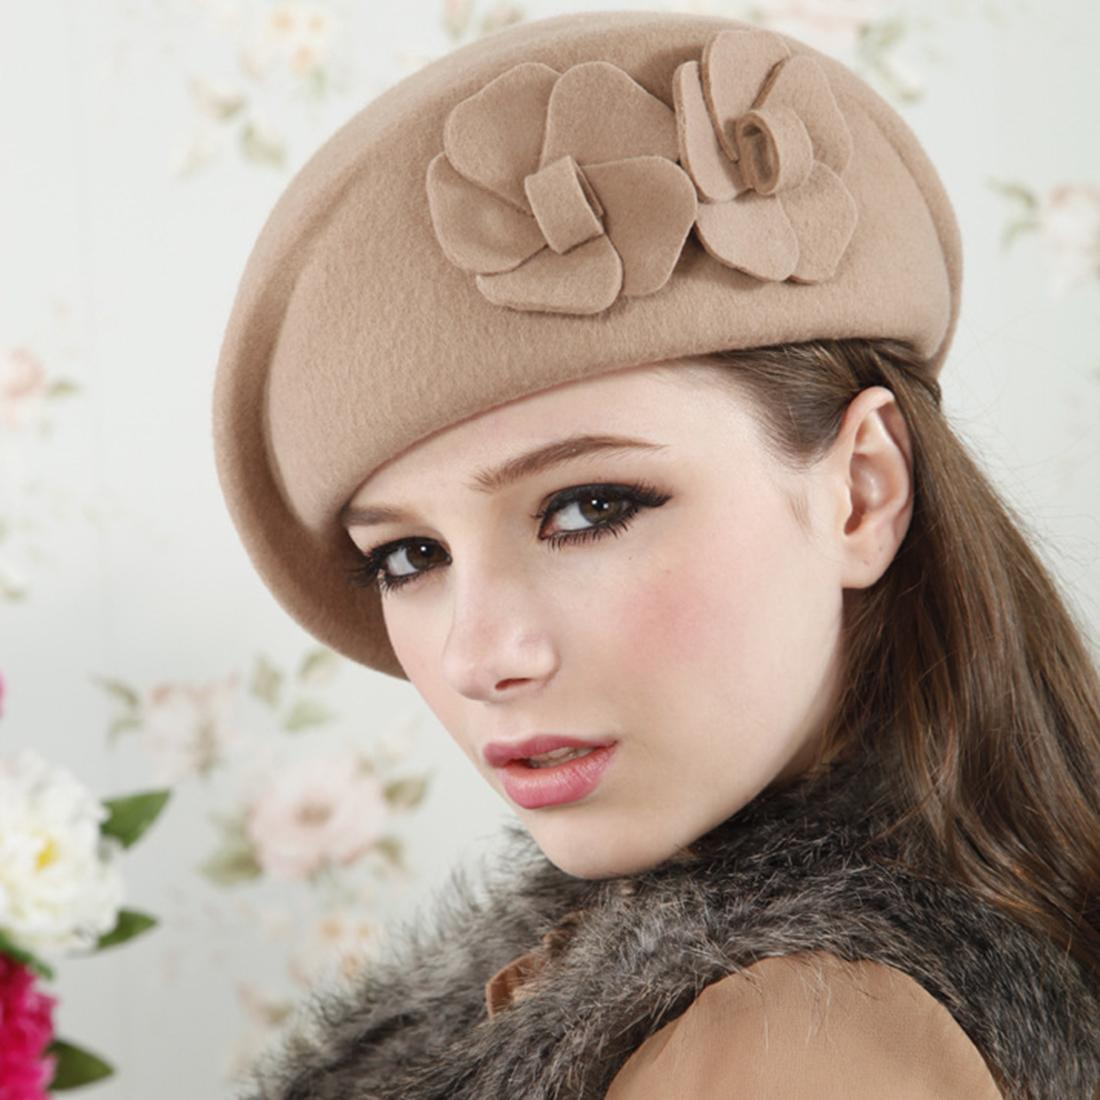 2019 Wholesale Autumn Winter Women Flower Beret Berets Ladies Girls Fashion  Elegant Party Hats 2016 Solid Stylish Woolen Caps Black Red Khaki From  Haydena d1ae3e5c0e